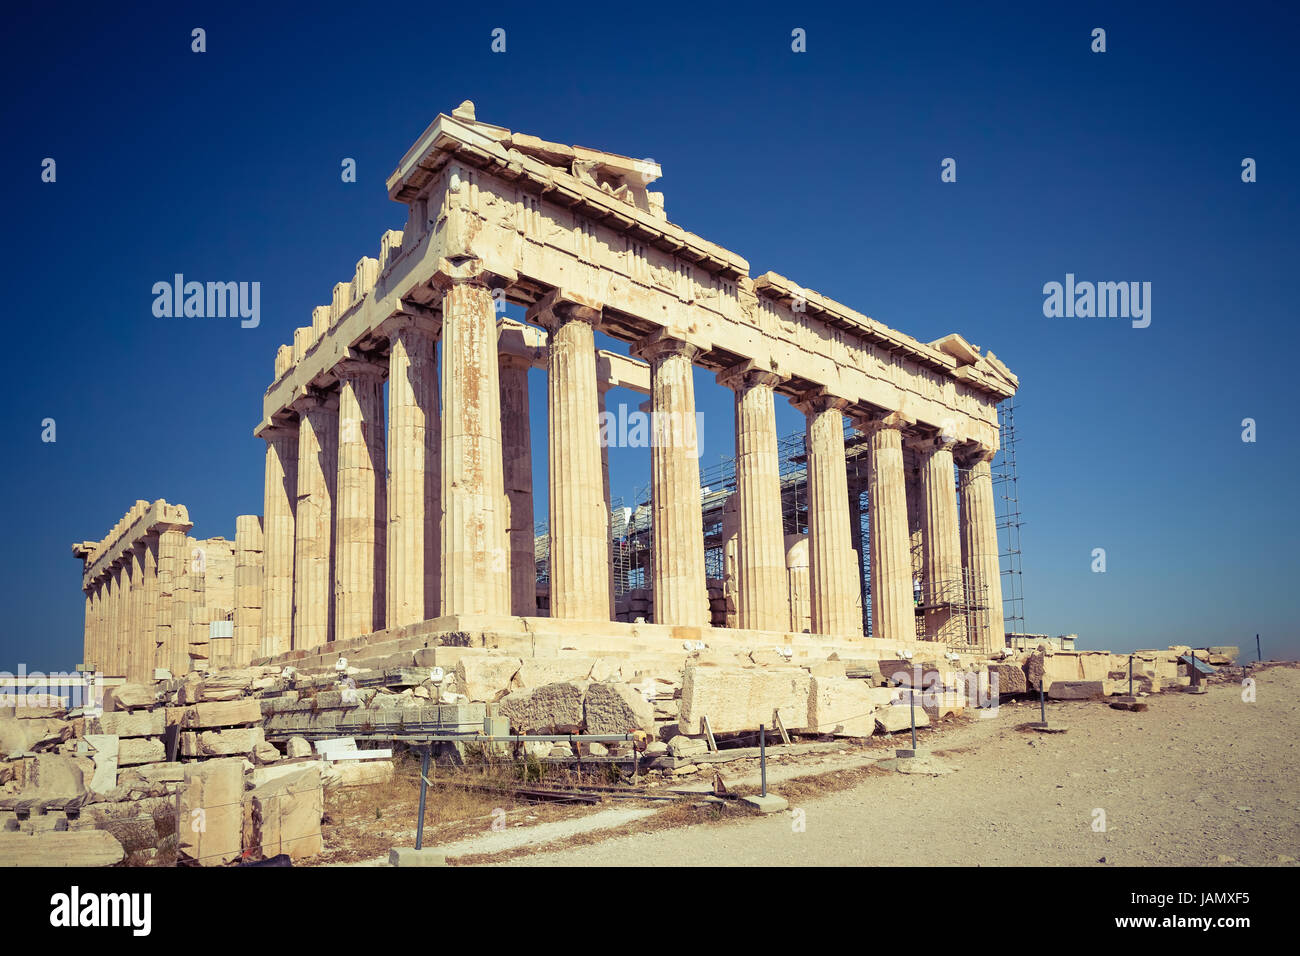 Parthenon in Acropolis of Athens, Greece - Stock Image